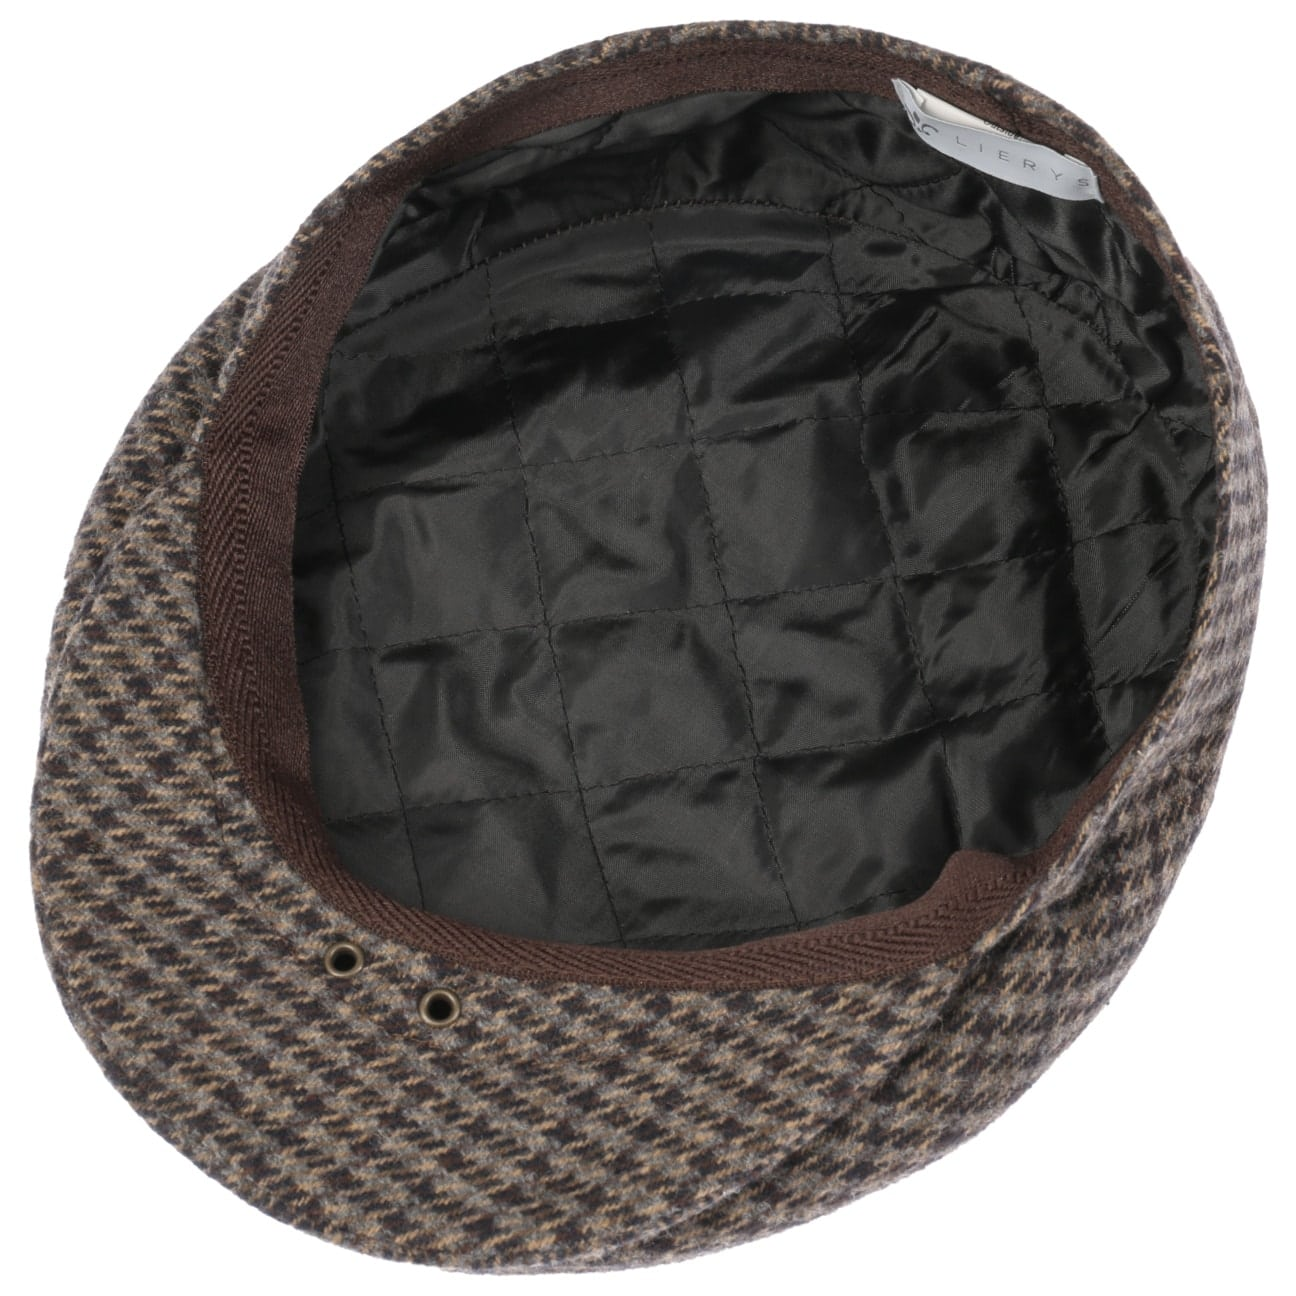 ... Britain Houndstooth Flat Cap by Lierys - brown 3 ... d14100102a5